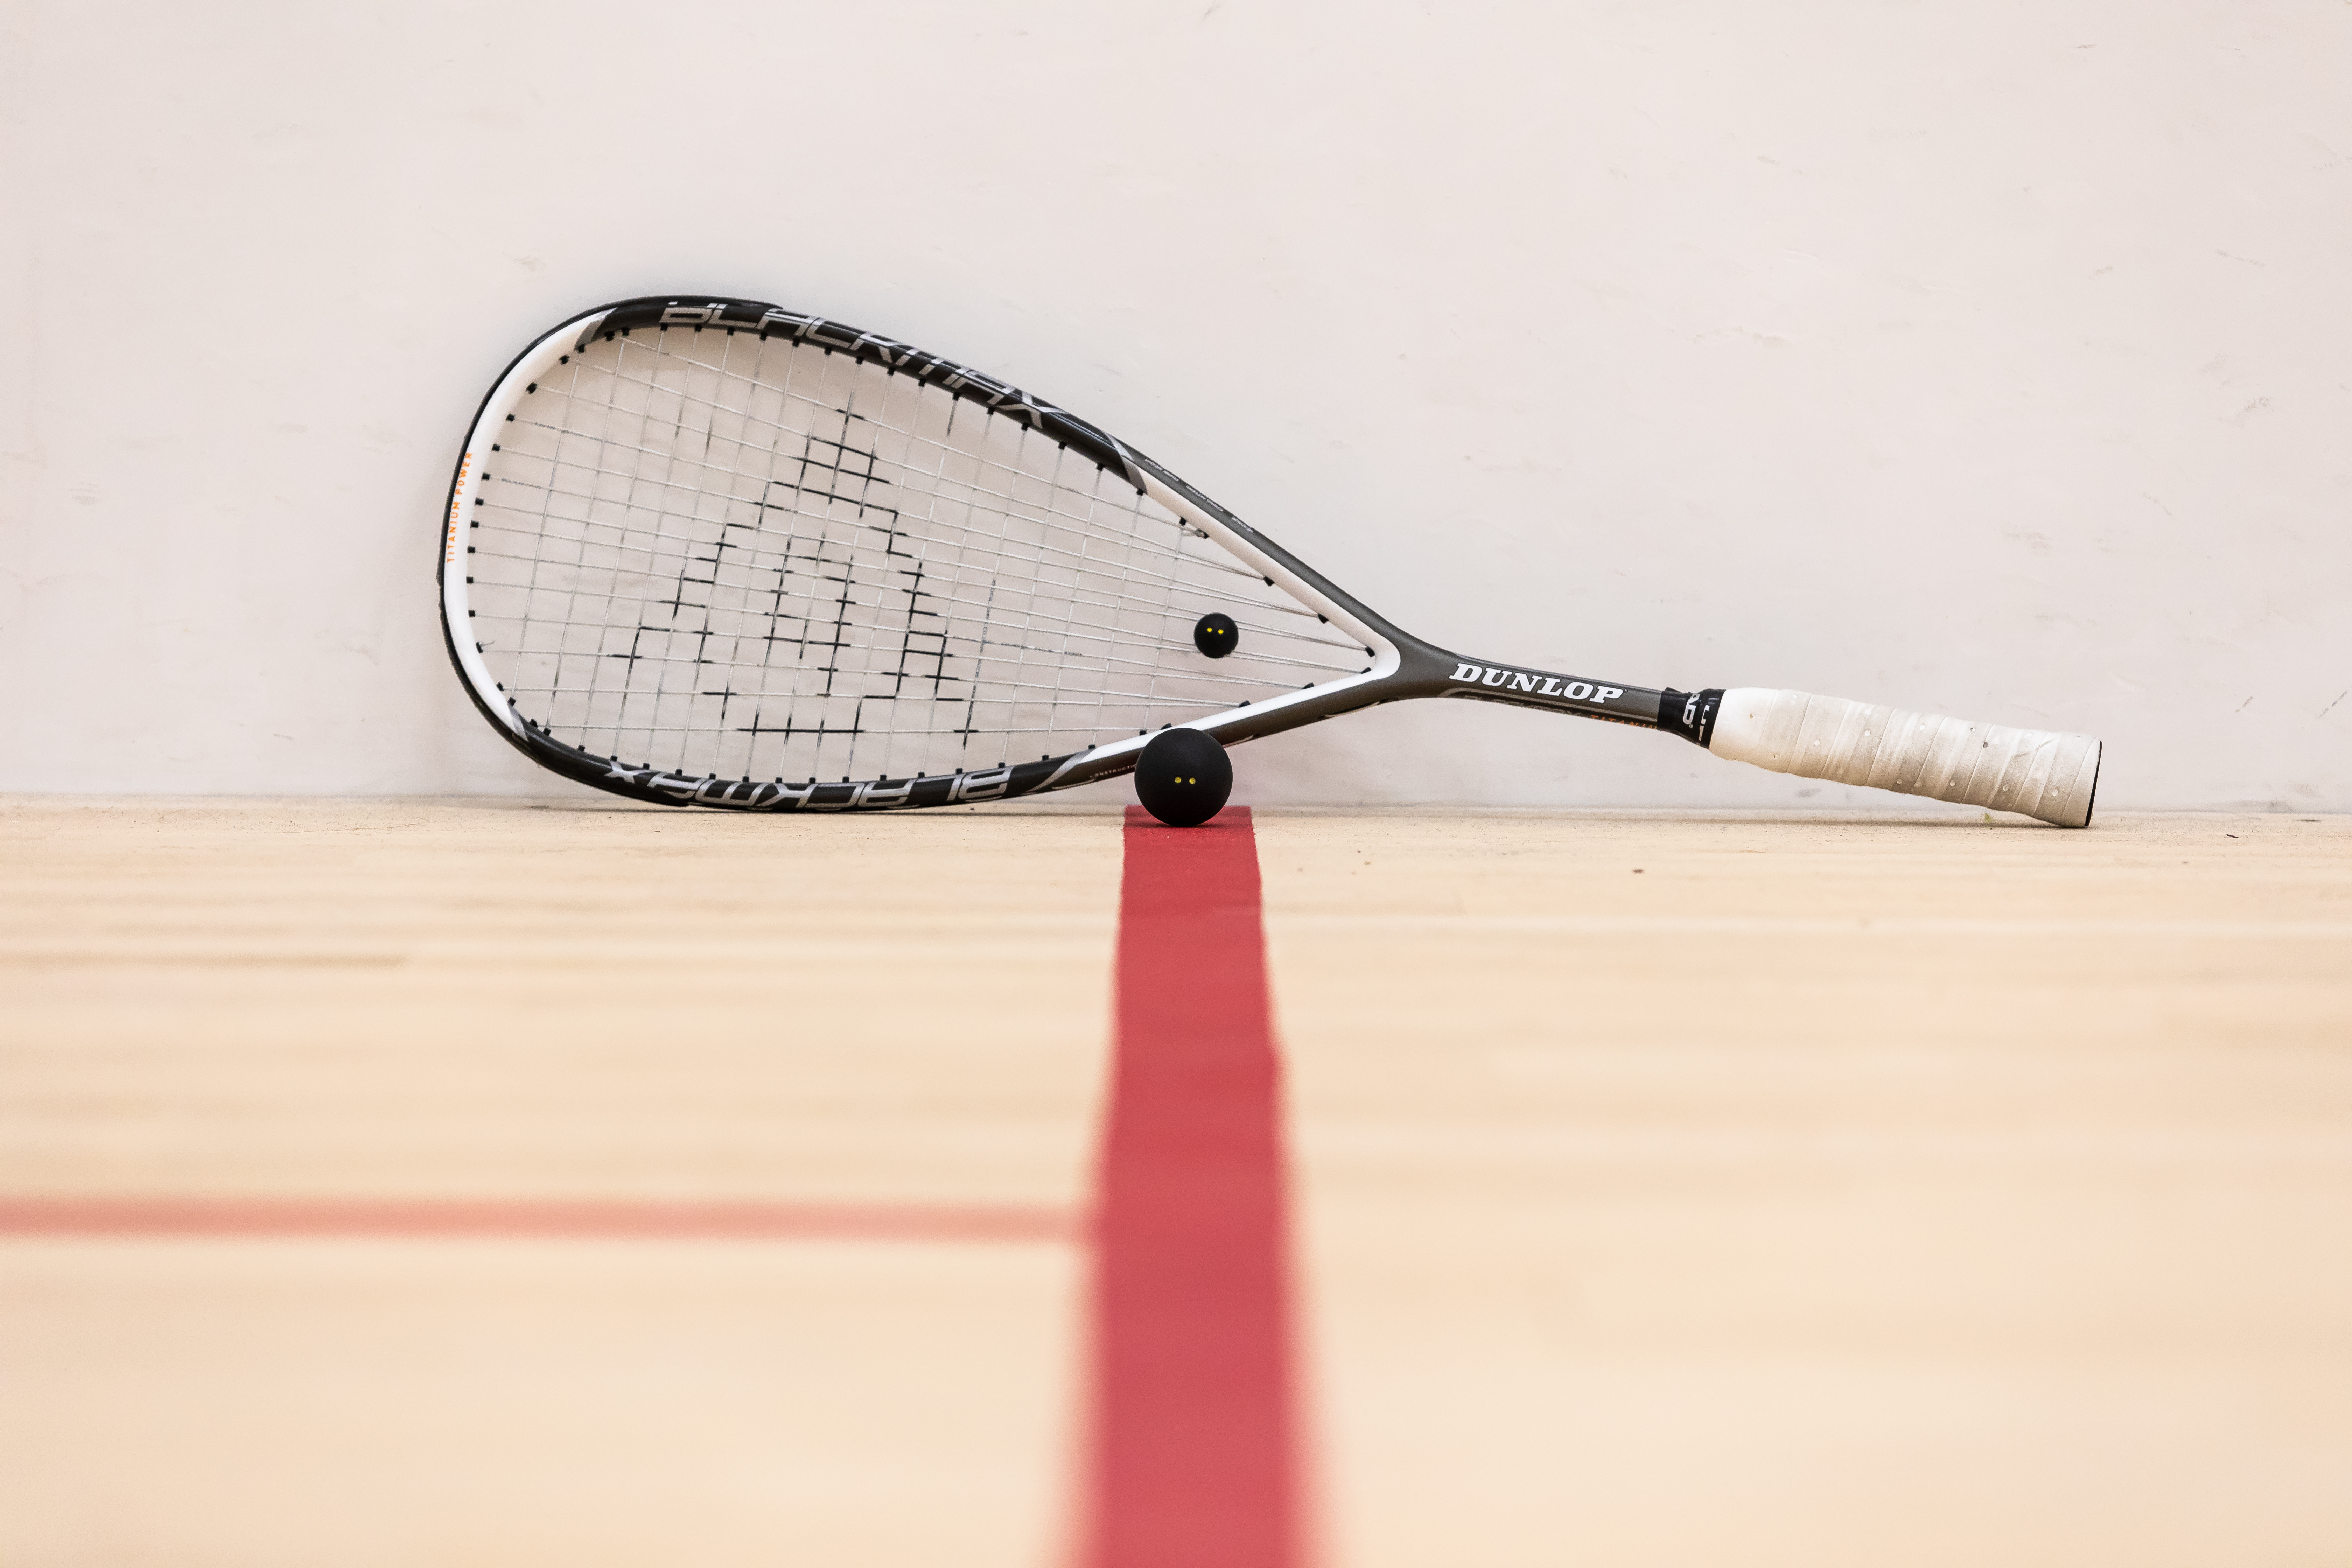 A squash racket and a ball on a court